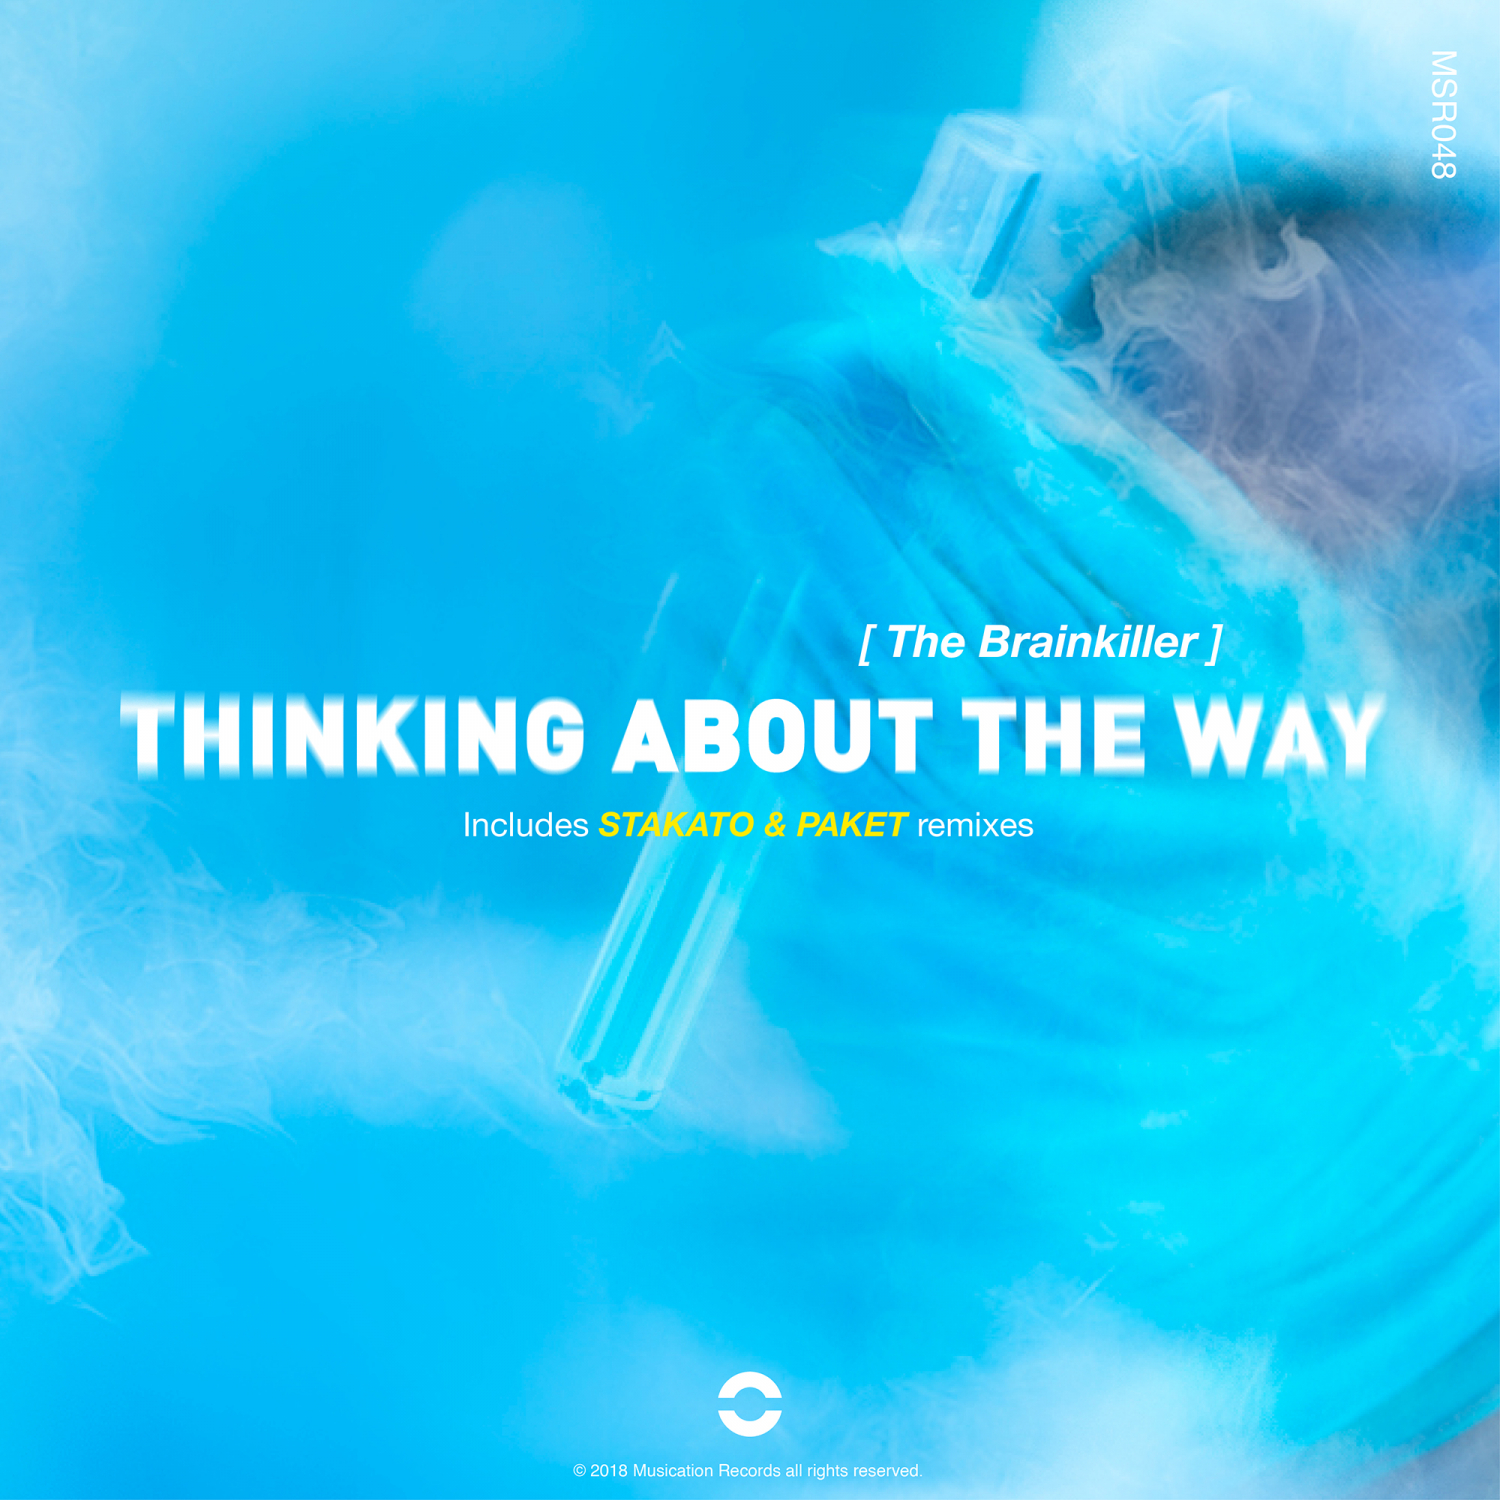 The Brainkiller  - Thinking About The Way (Paket Remix)